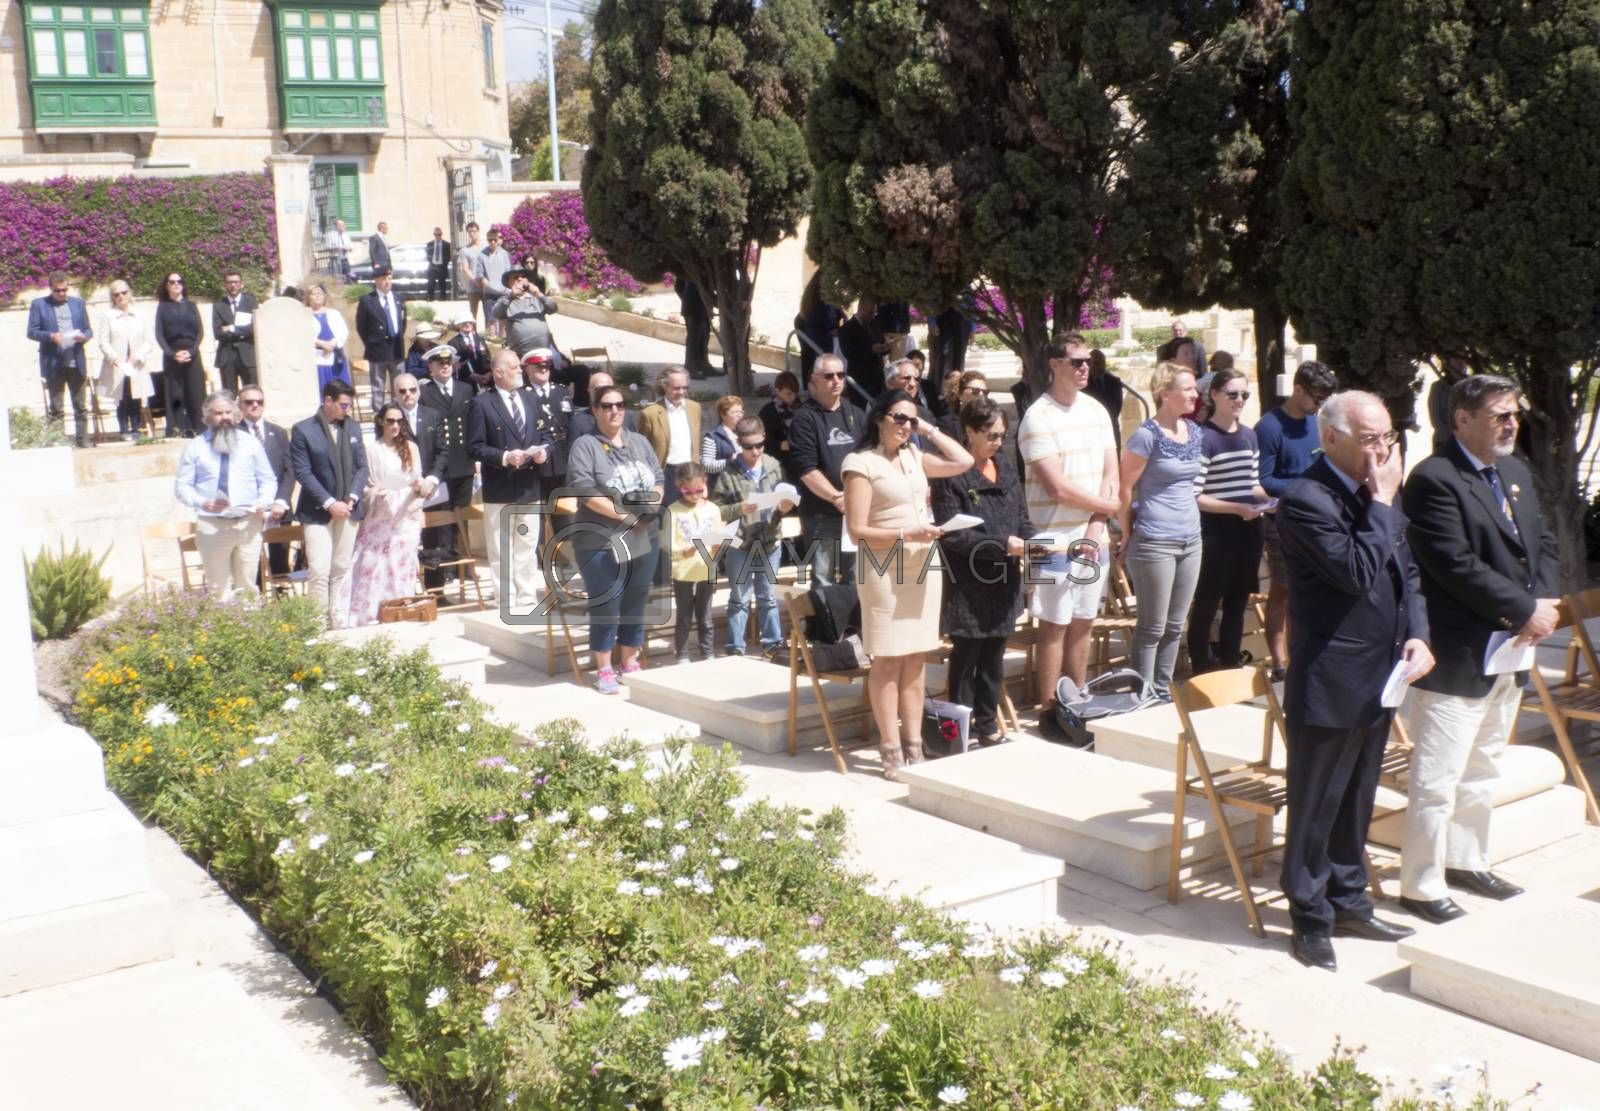 MALTA, Marsa: People gather to watch the ceremonies for Anzac Day on April 25, 2016, in Malta.The Wreath laying ceremony takes place on the anniversary of the first major military action fought by Australian and New Zealand forces during World War I. Thousands of woundedAustralians, New Zealanders, Canadians and English were sent to the tiny Mediterranean island for care during theGallipolicampaign. ANZAC stands for Australian and New Zealand Army Corps.